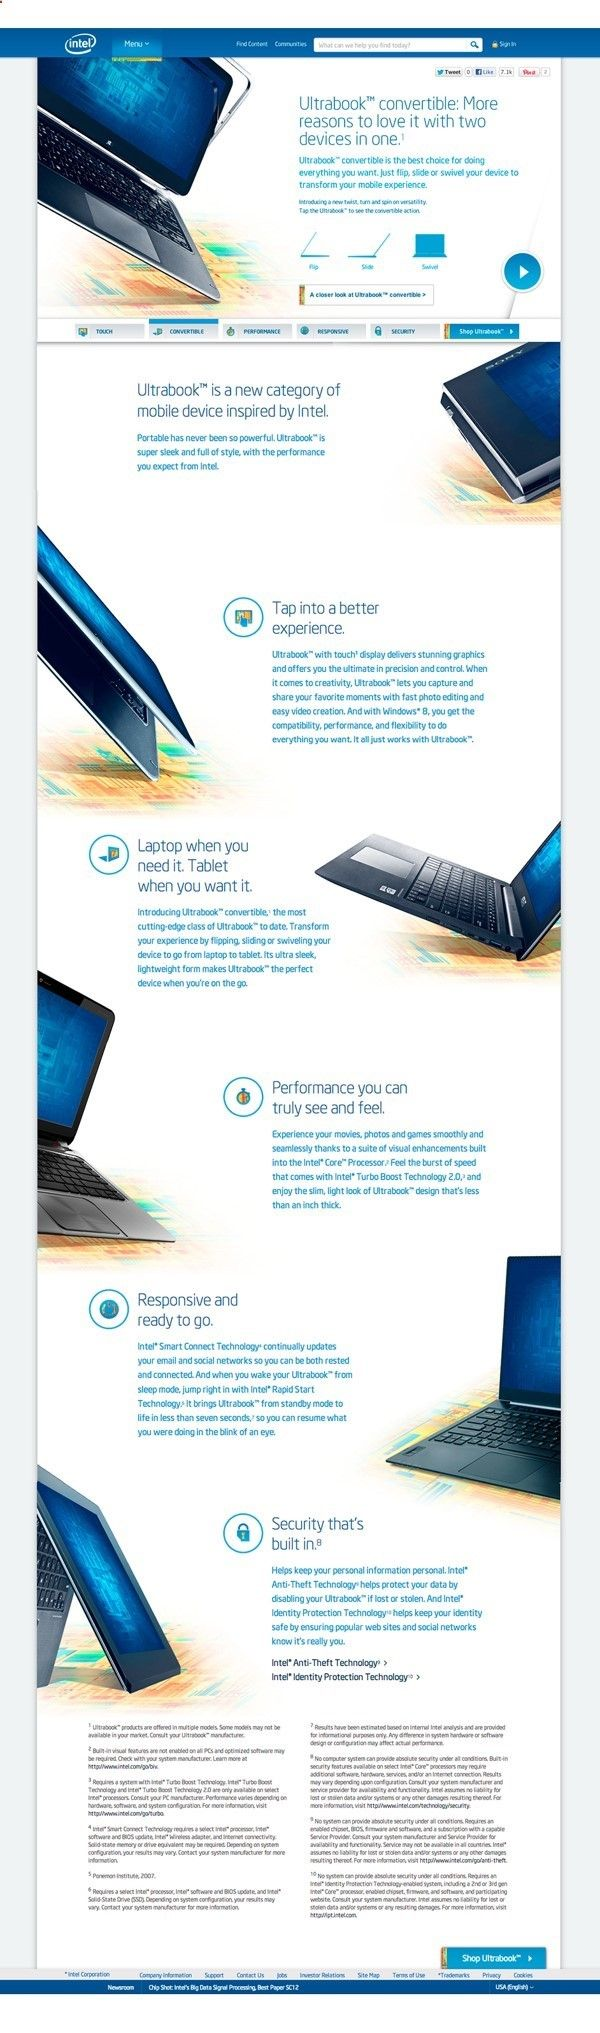 Ultrabook Laptops - Ultrabook Laptops - Ultrabook Laptops - . - TOP10 BEST LAPTOPS 2017 (ULTRABOOK, HYBRID, GAMES ...) - TOP10 BEST LAPTOPS 2017 (ULTRABOOK, HYBRID, GAMES ...)  - TOP10 BEST LAPTOPS 2017 (ULTRABOOK, HYBRID, GAMES ...)